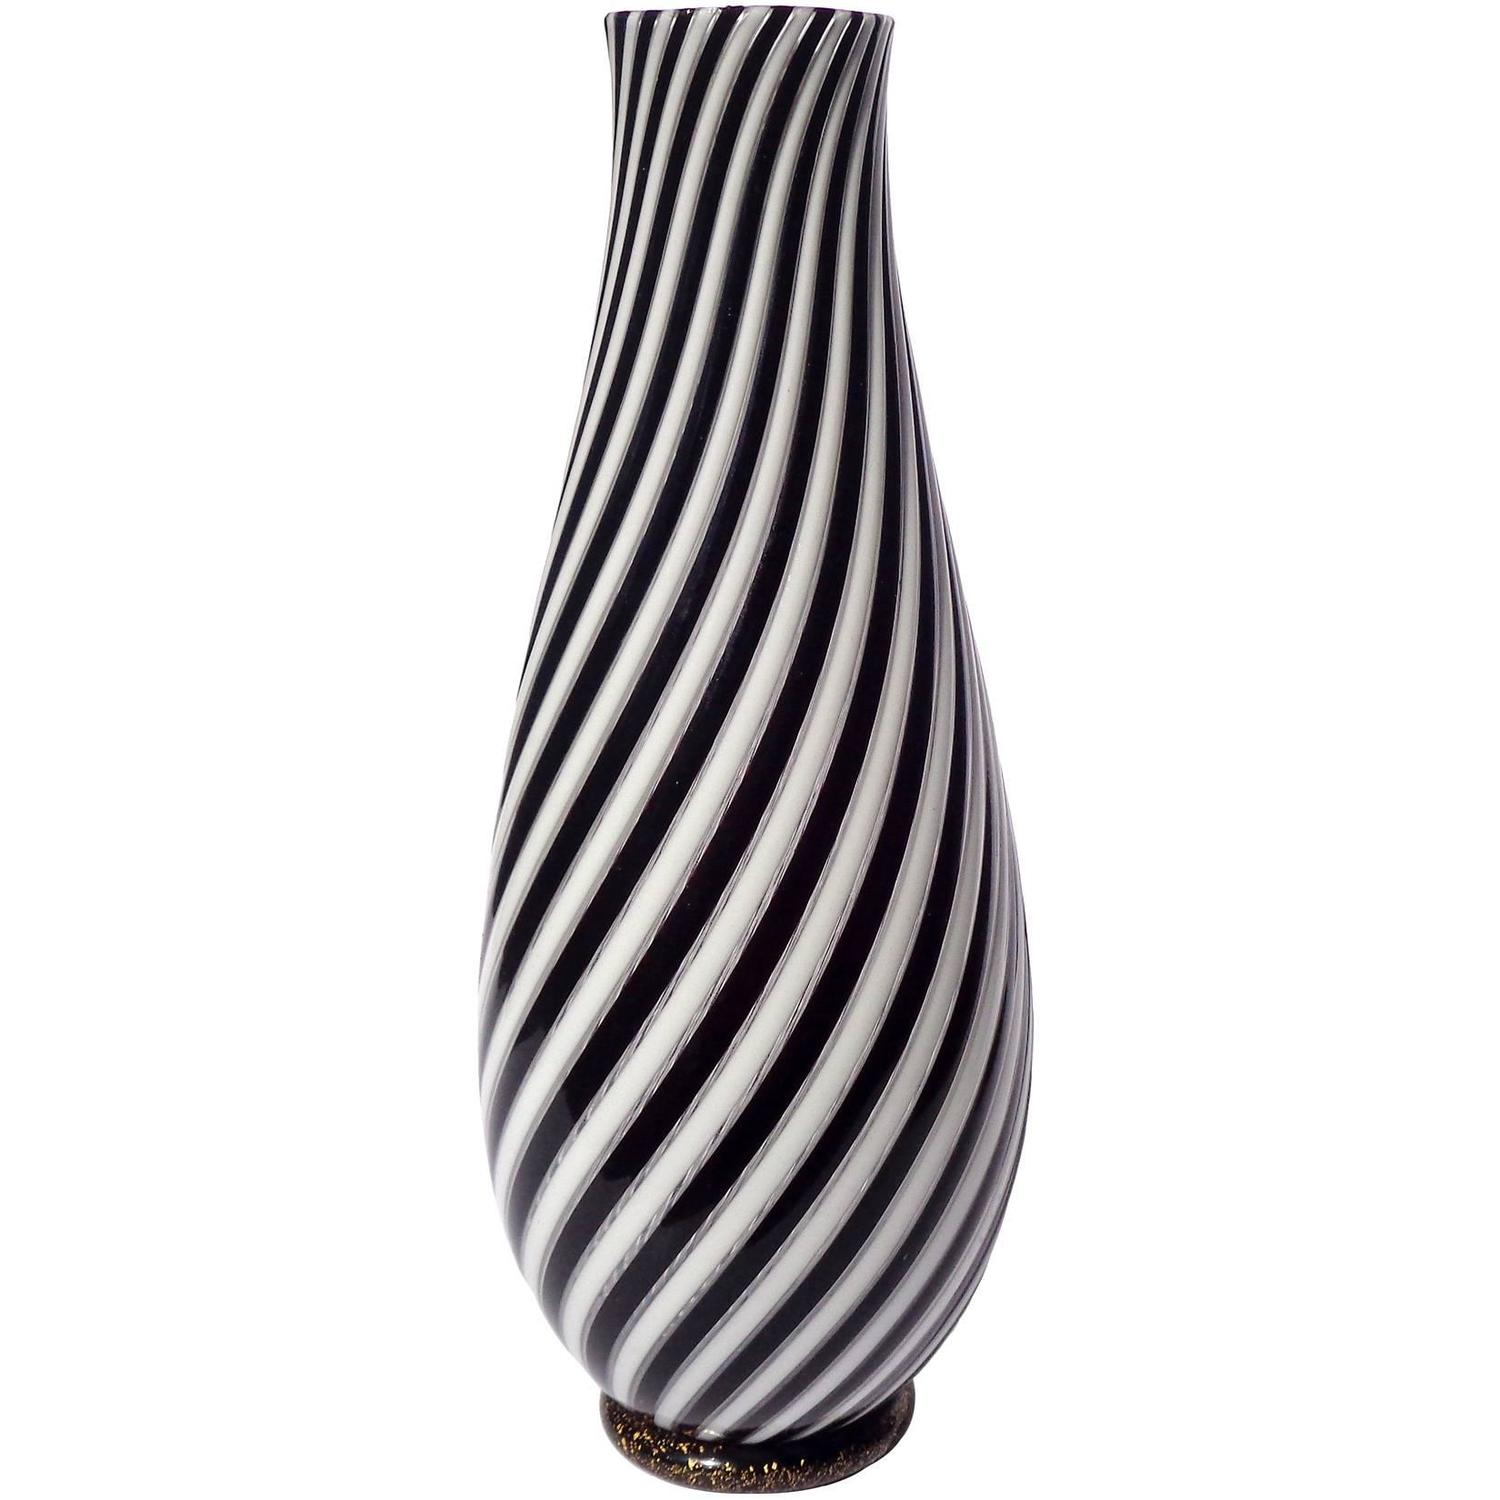 Black And White Vases | Home design ideas on gold sg, gold post, gold lv, gold mc, gold greenland, gold ad, gold cat, gold co, gold na, gold ax,